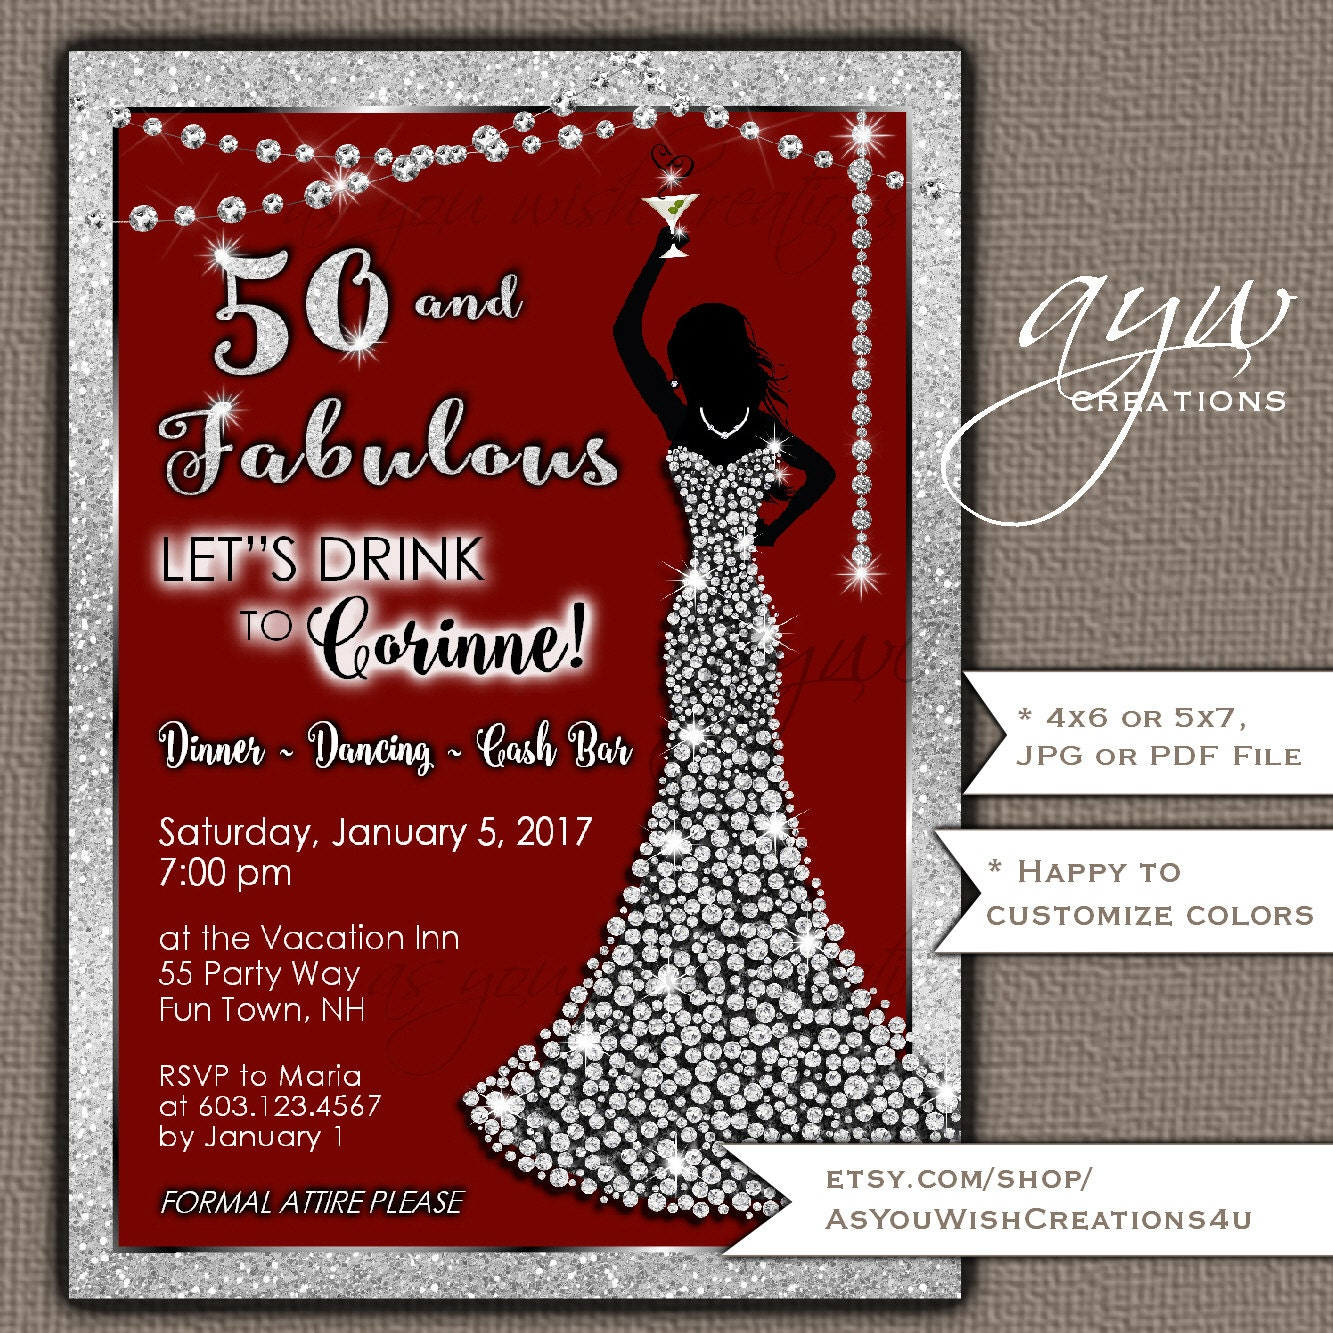 50th Birthday Party Invitation For The Woman Who Is Fifty And Etsy